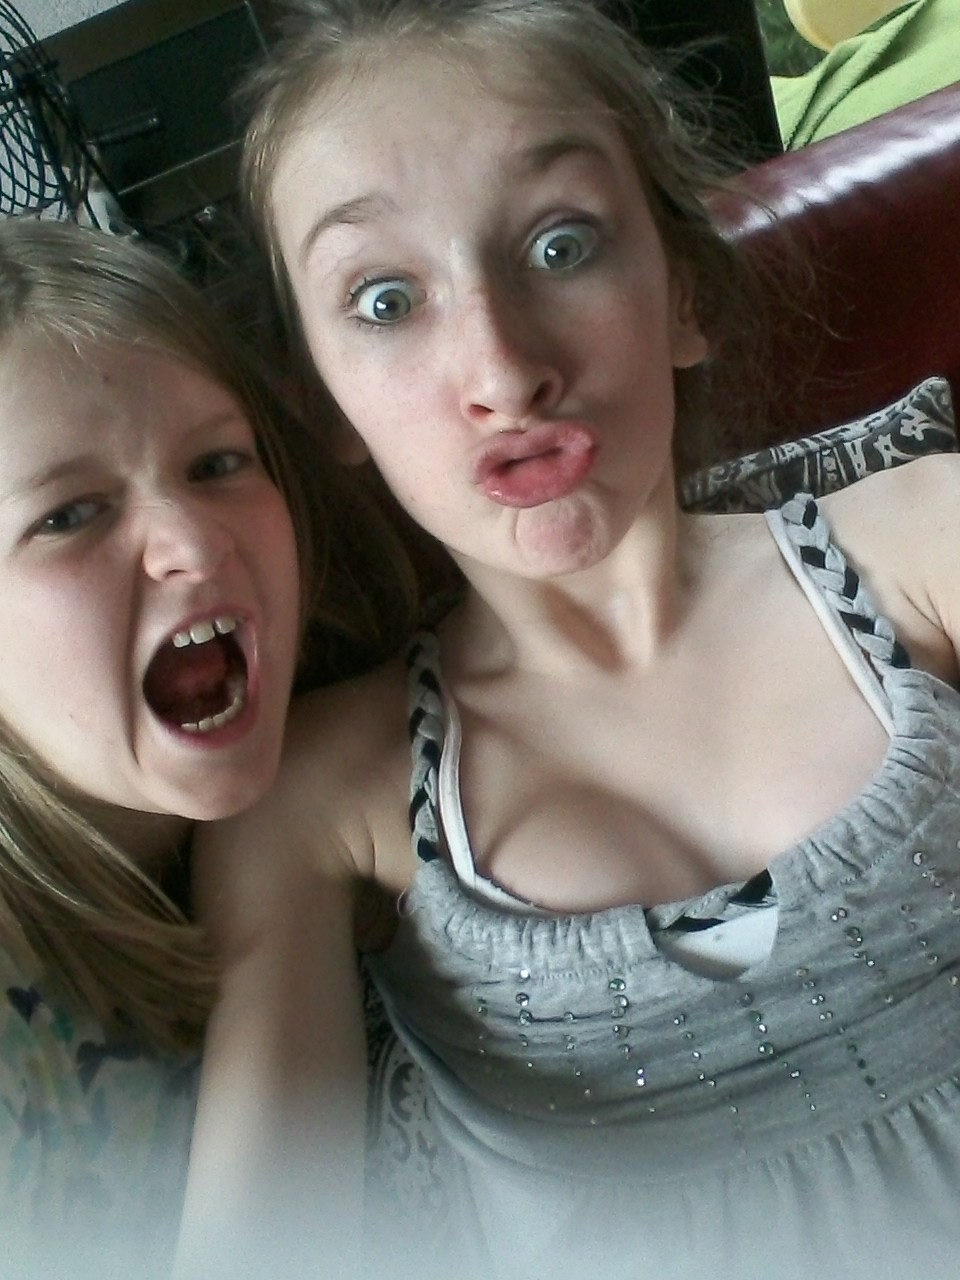 Just acting weird with sis ♥